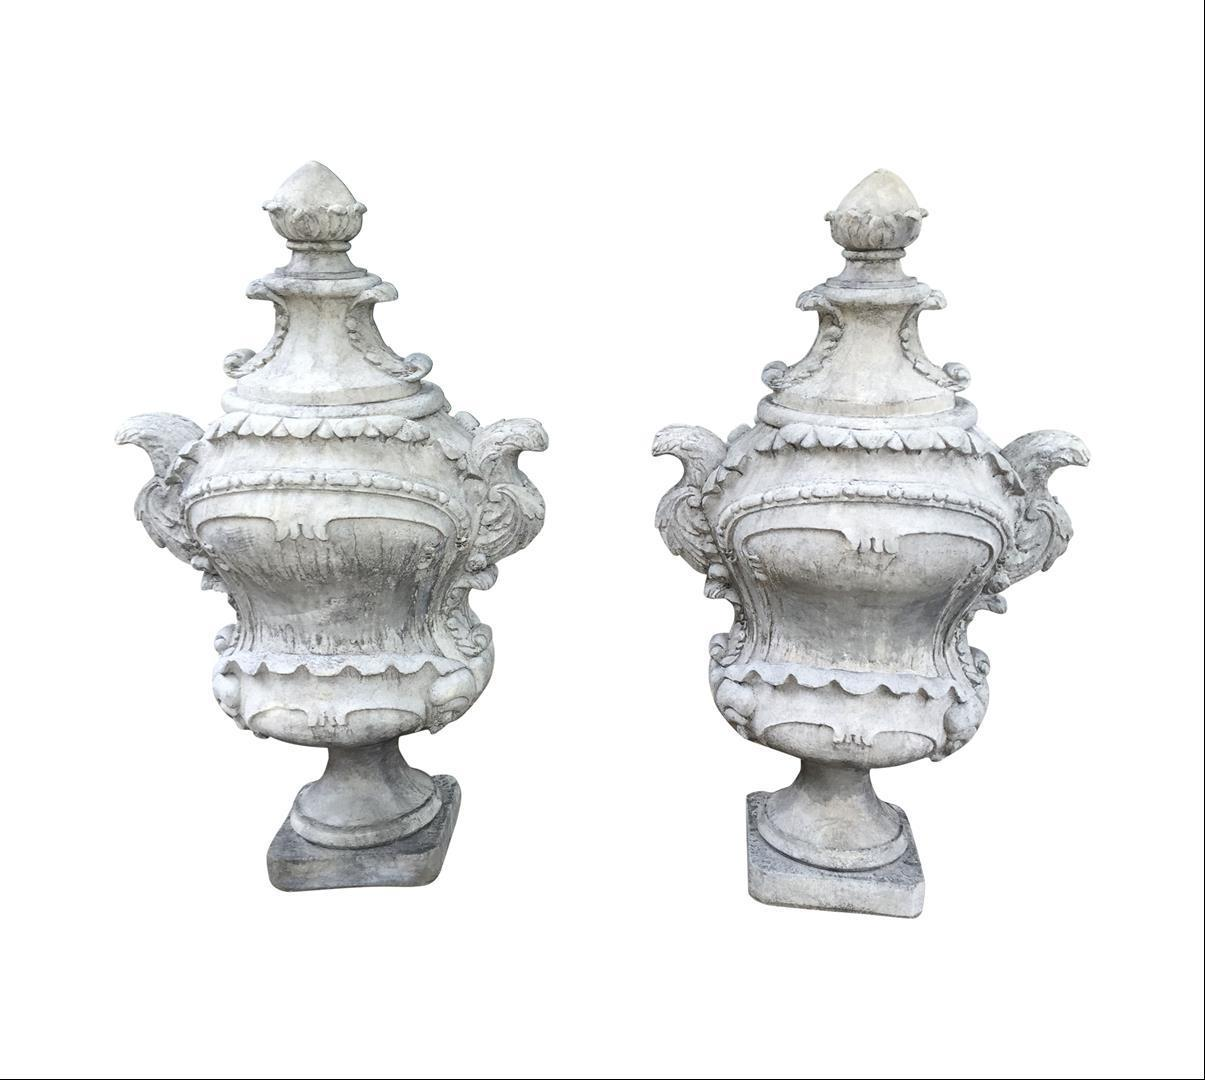 Pair of Large Cast Stone French Garden Finials from